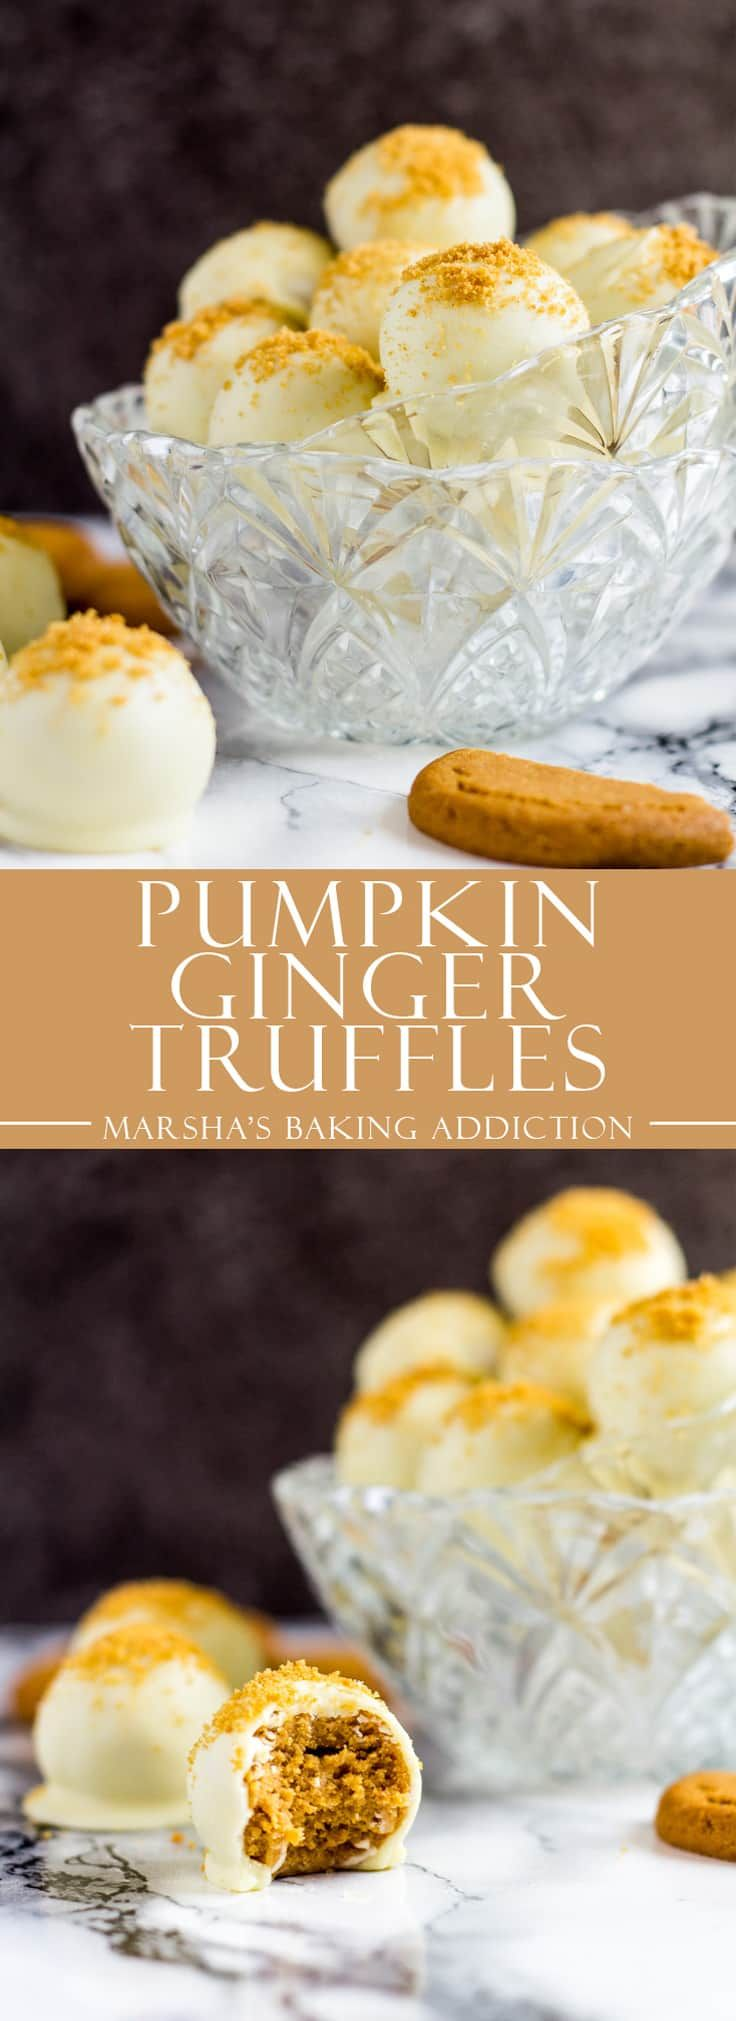 Pumpkin Gingerbread Truffles- Deliciously creamy pumpkin truffles loaded with ginger biscuit crumbs, and coated in white chocolate! | marshasbakingaddiction.com | @marshasbakeblog